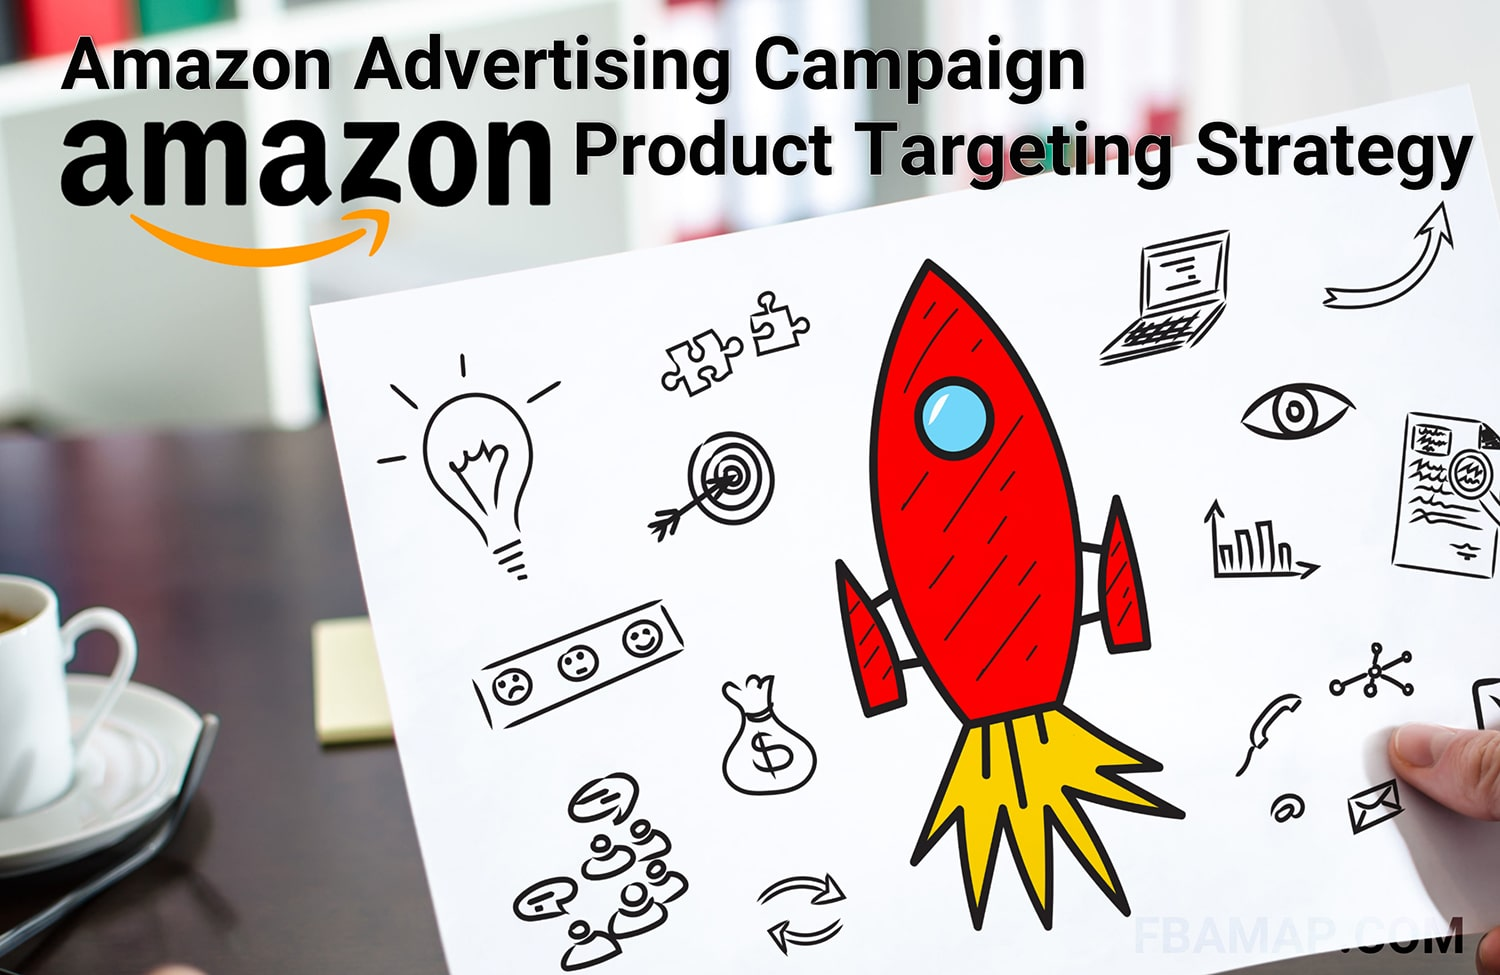 Amazon Advertising Campaign - A Product Targeting Strategy